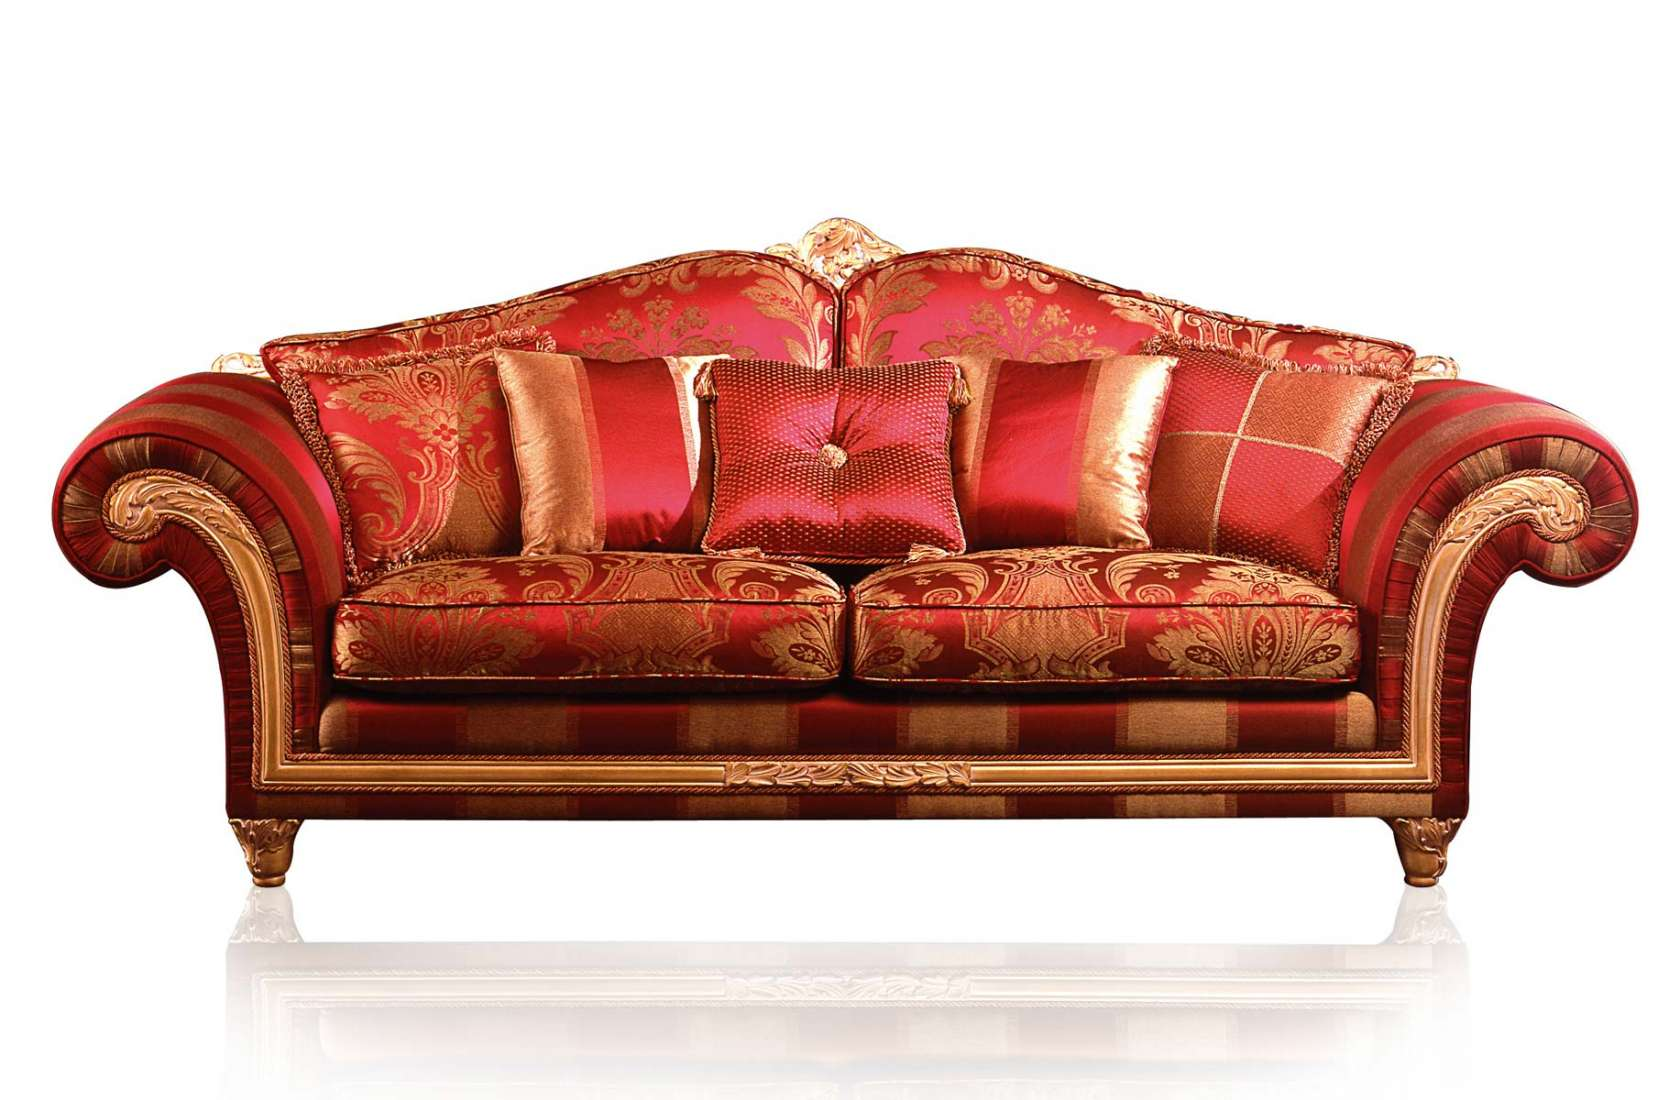 Gentil Classic Sofa Imperial In Red Fabric